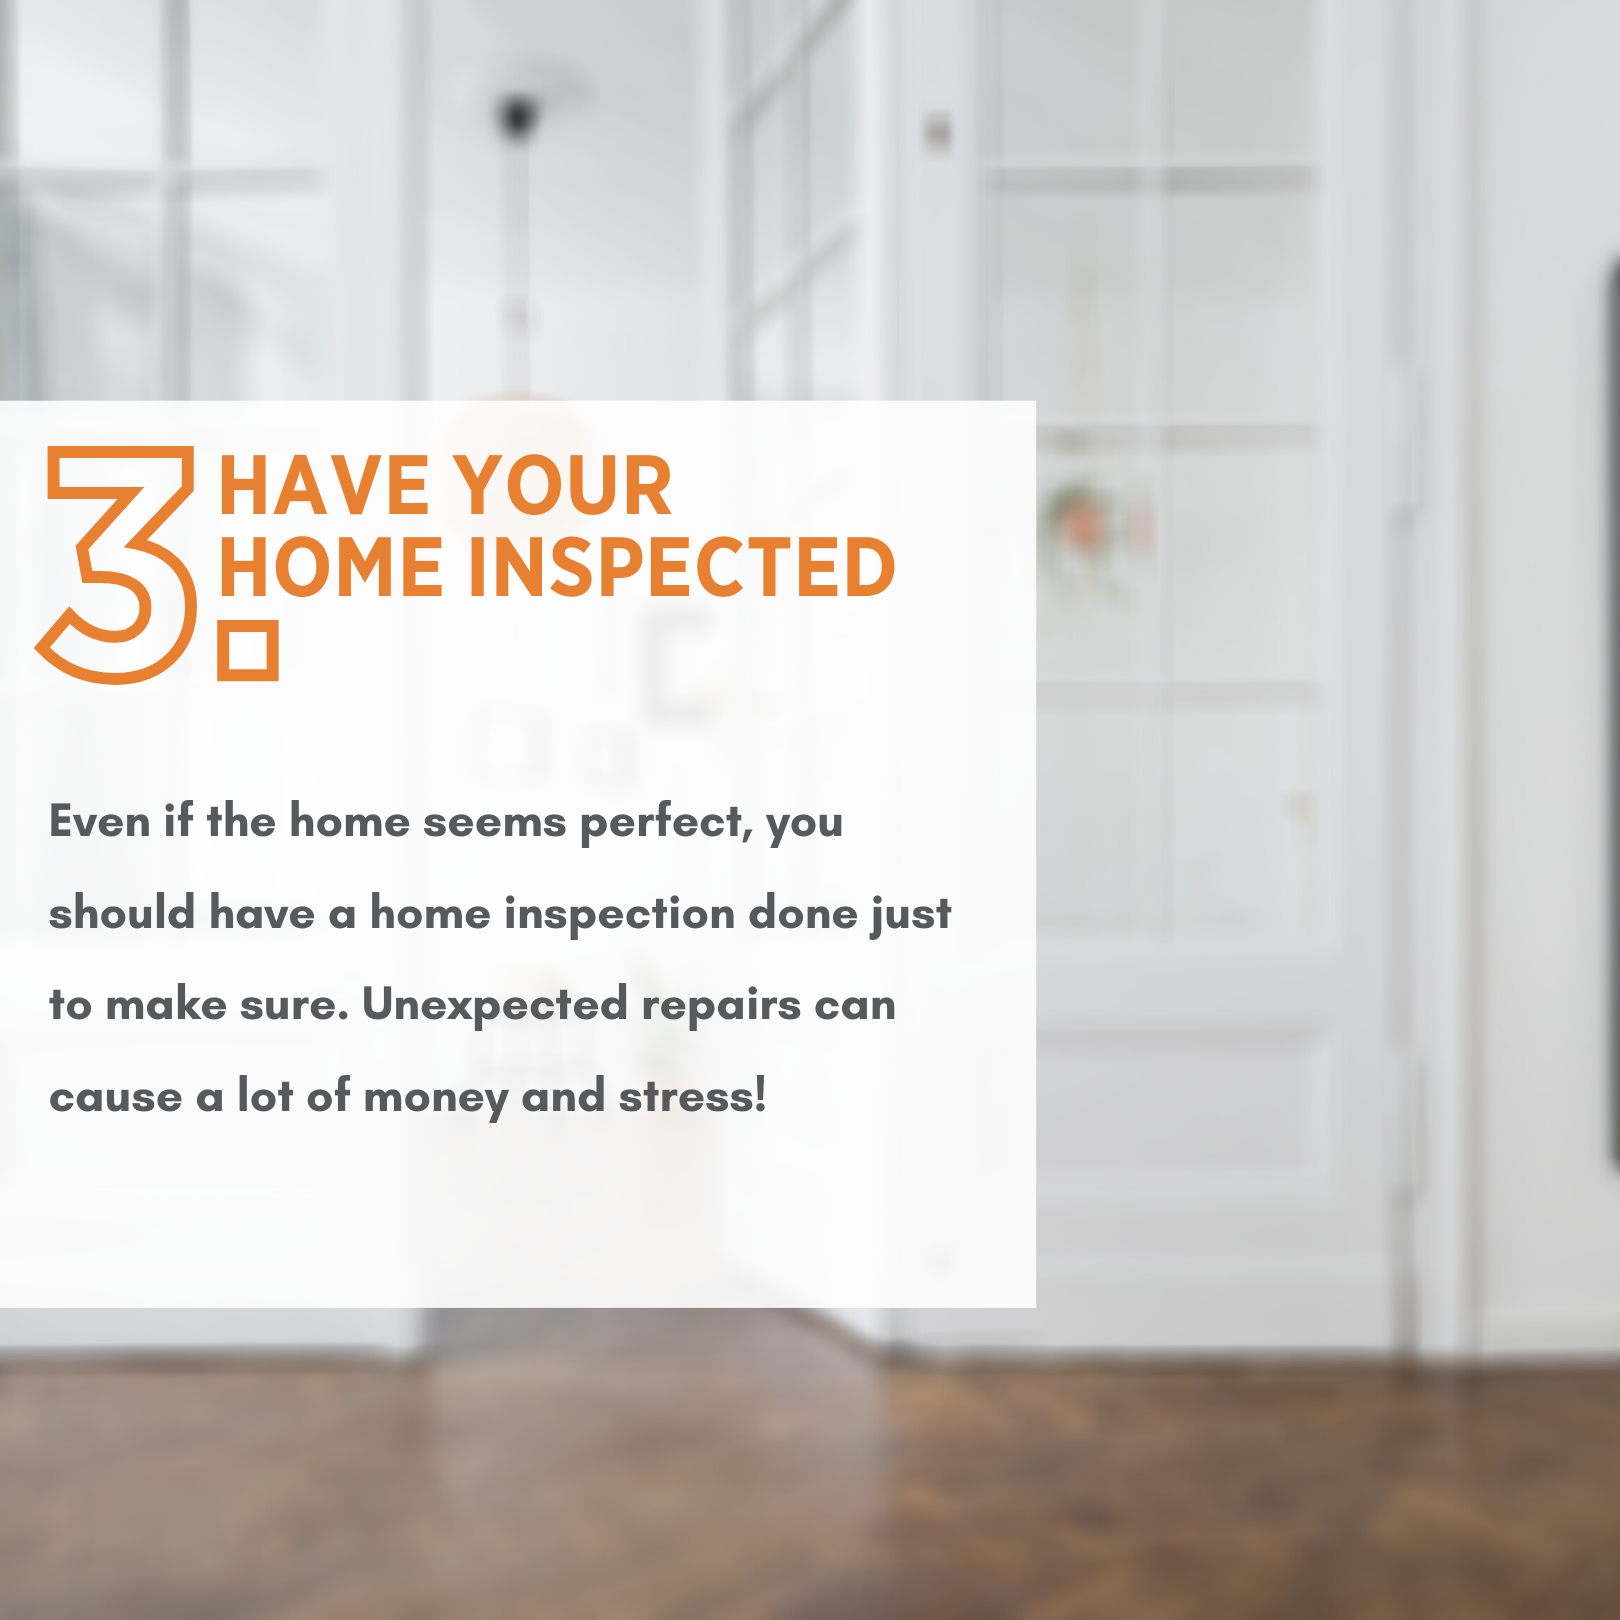 Have your home inspected! Even if a home may seem perfect, you should have a home inspection done just to make sure. Unexpected repairs can cause a lot of money and stress.